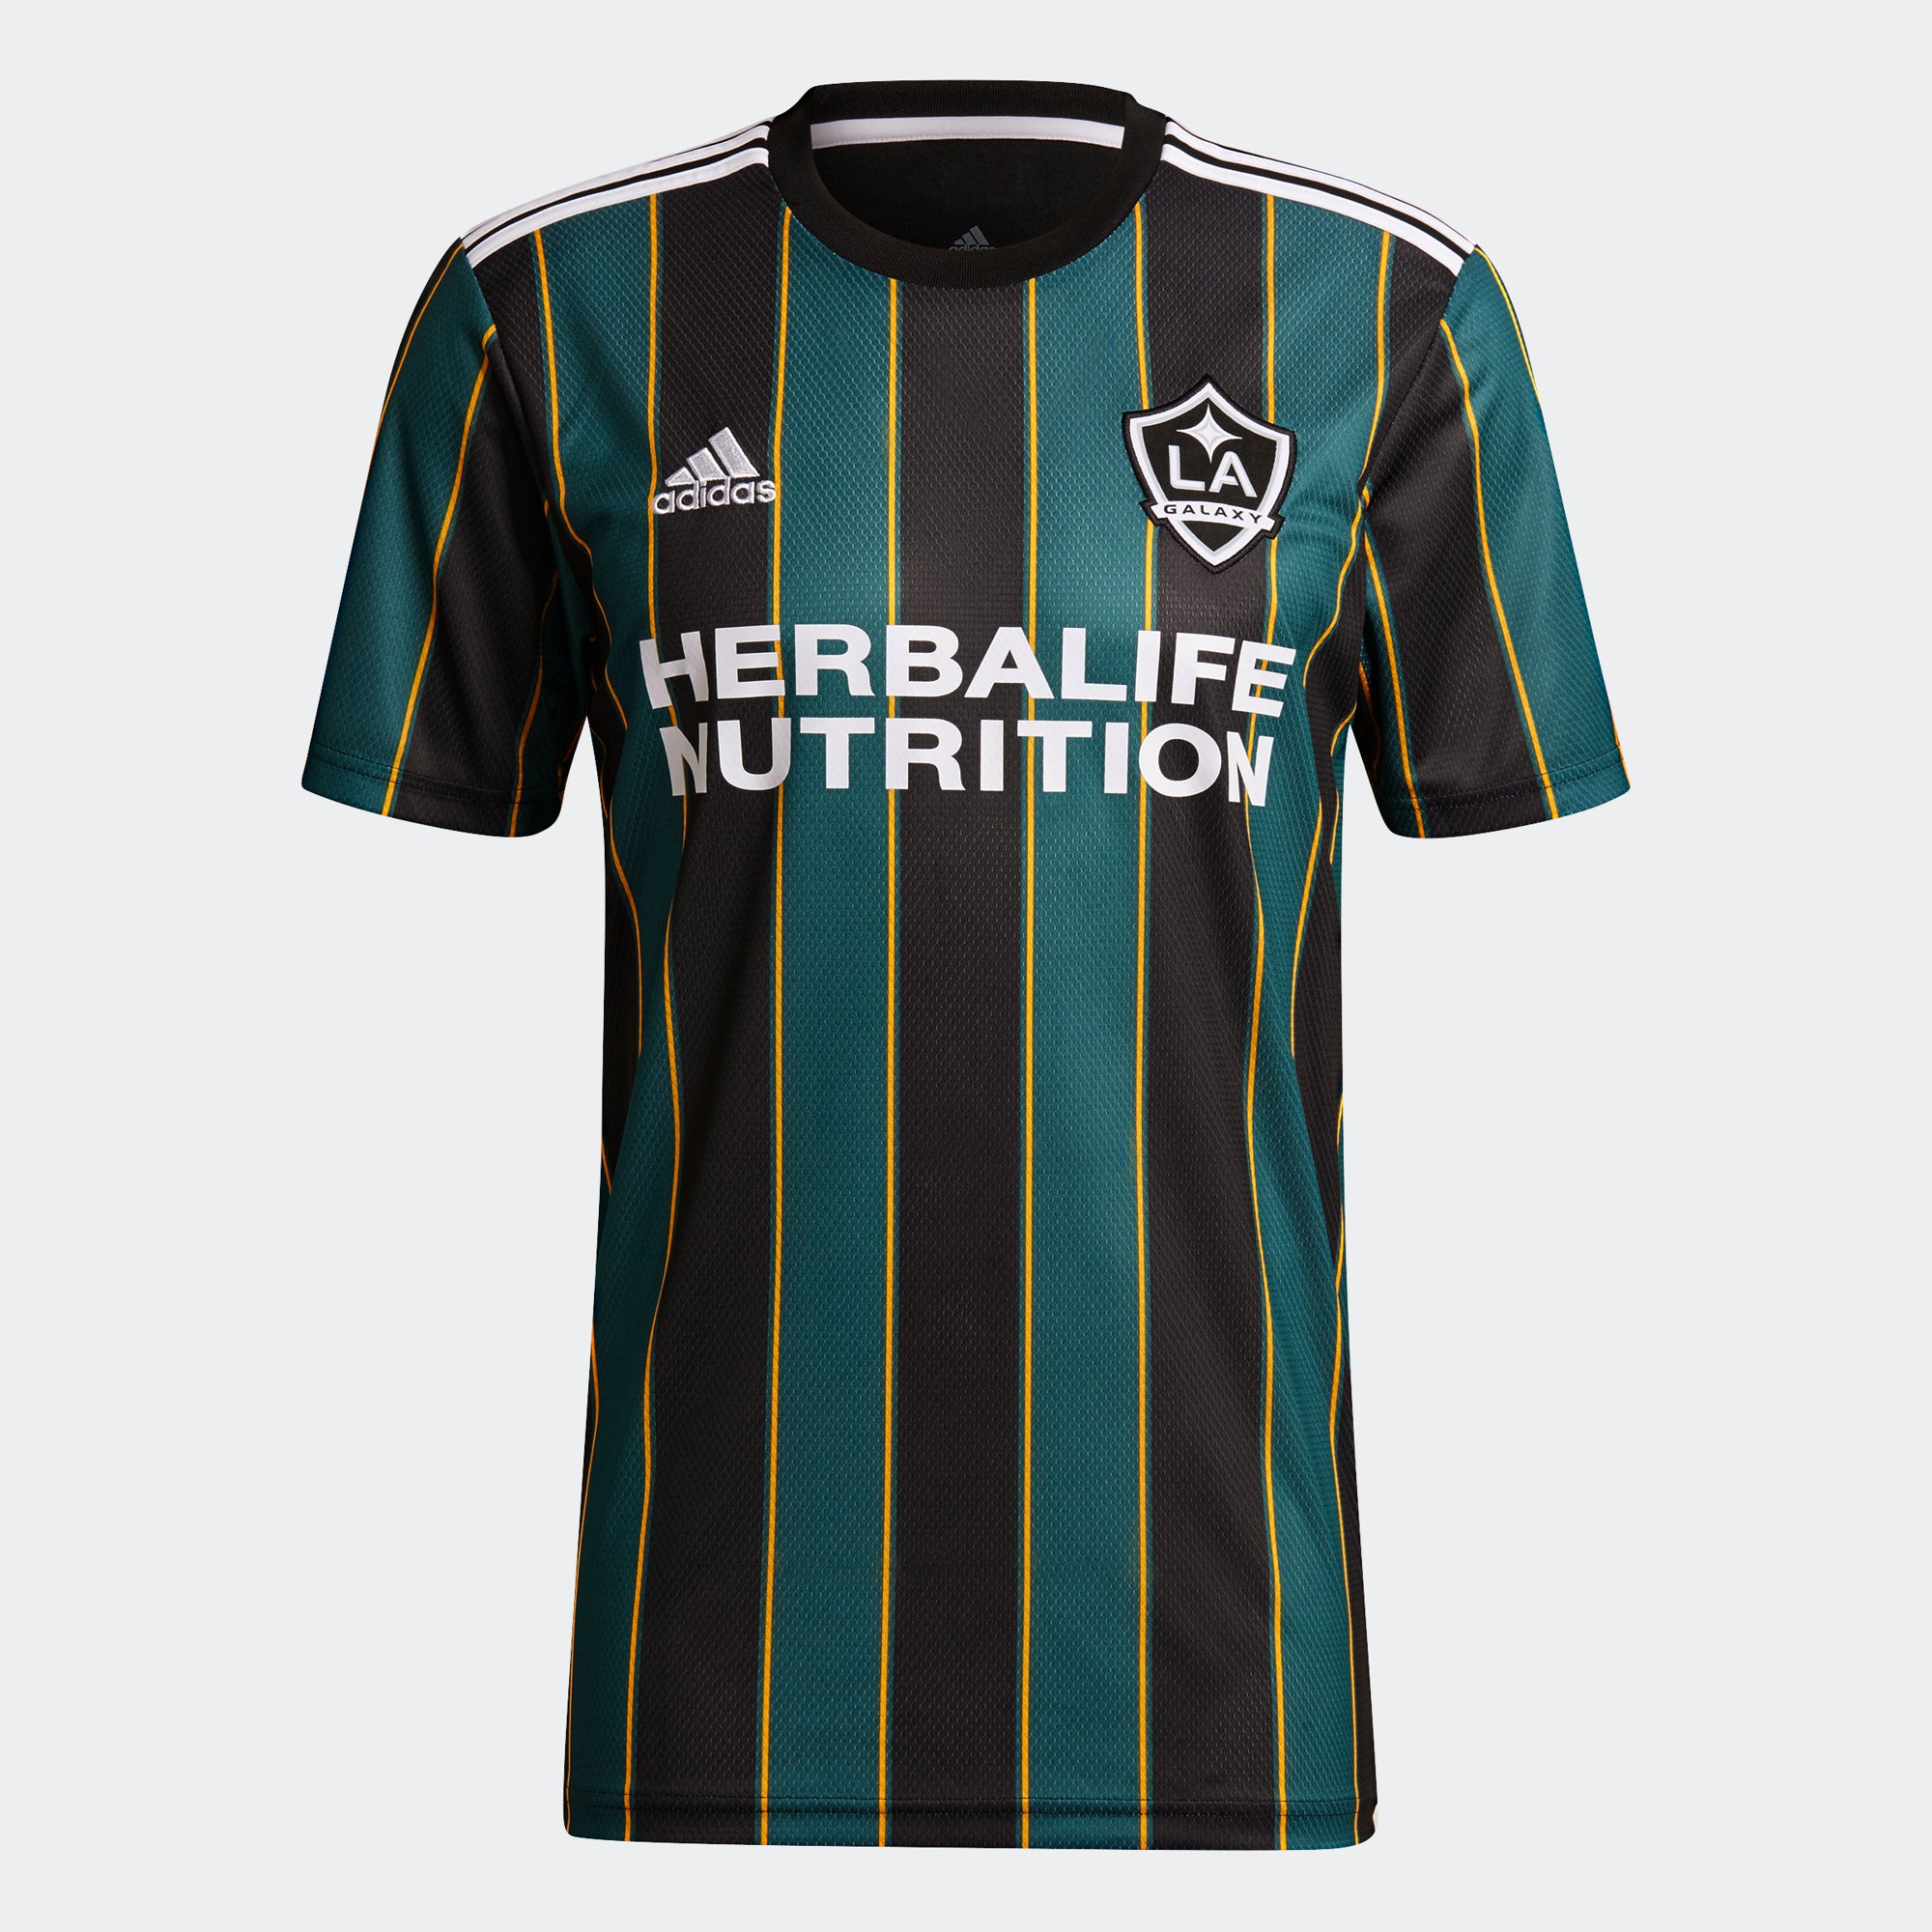 LA Galaxy Away Stadium Jersey 2021/22 Men's